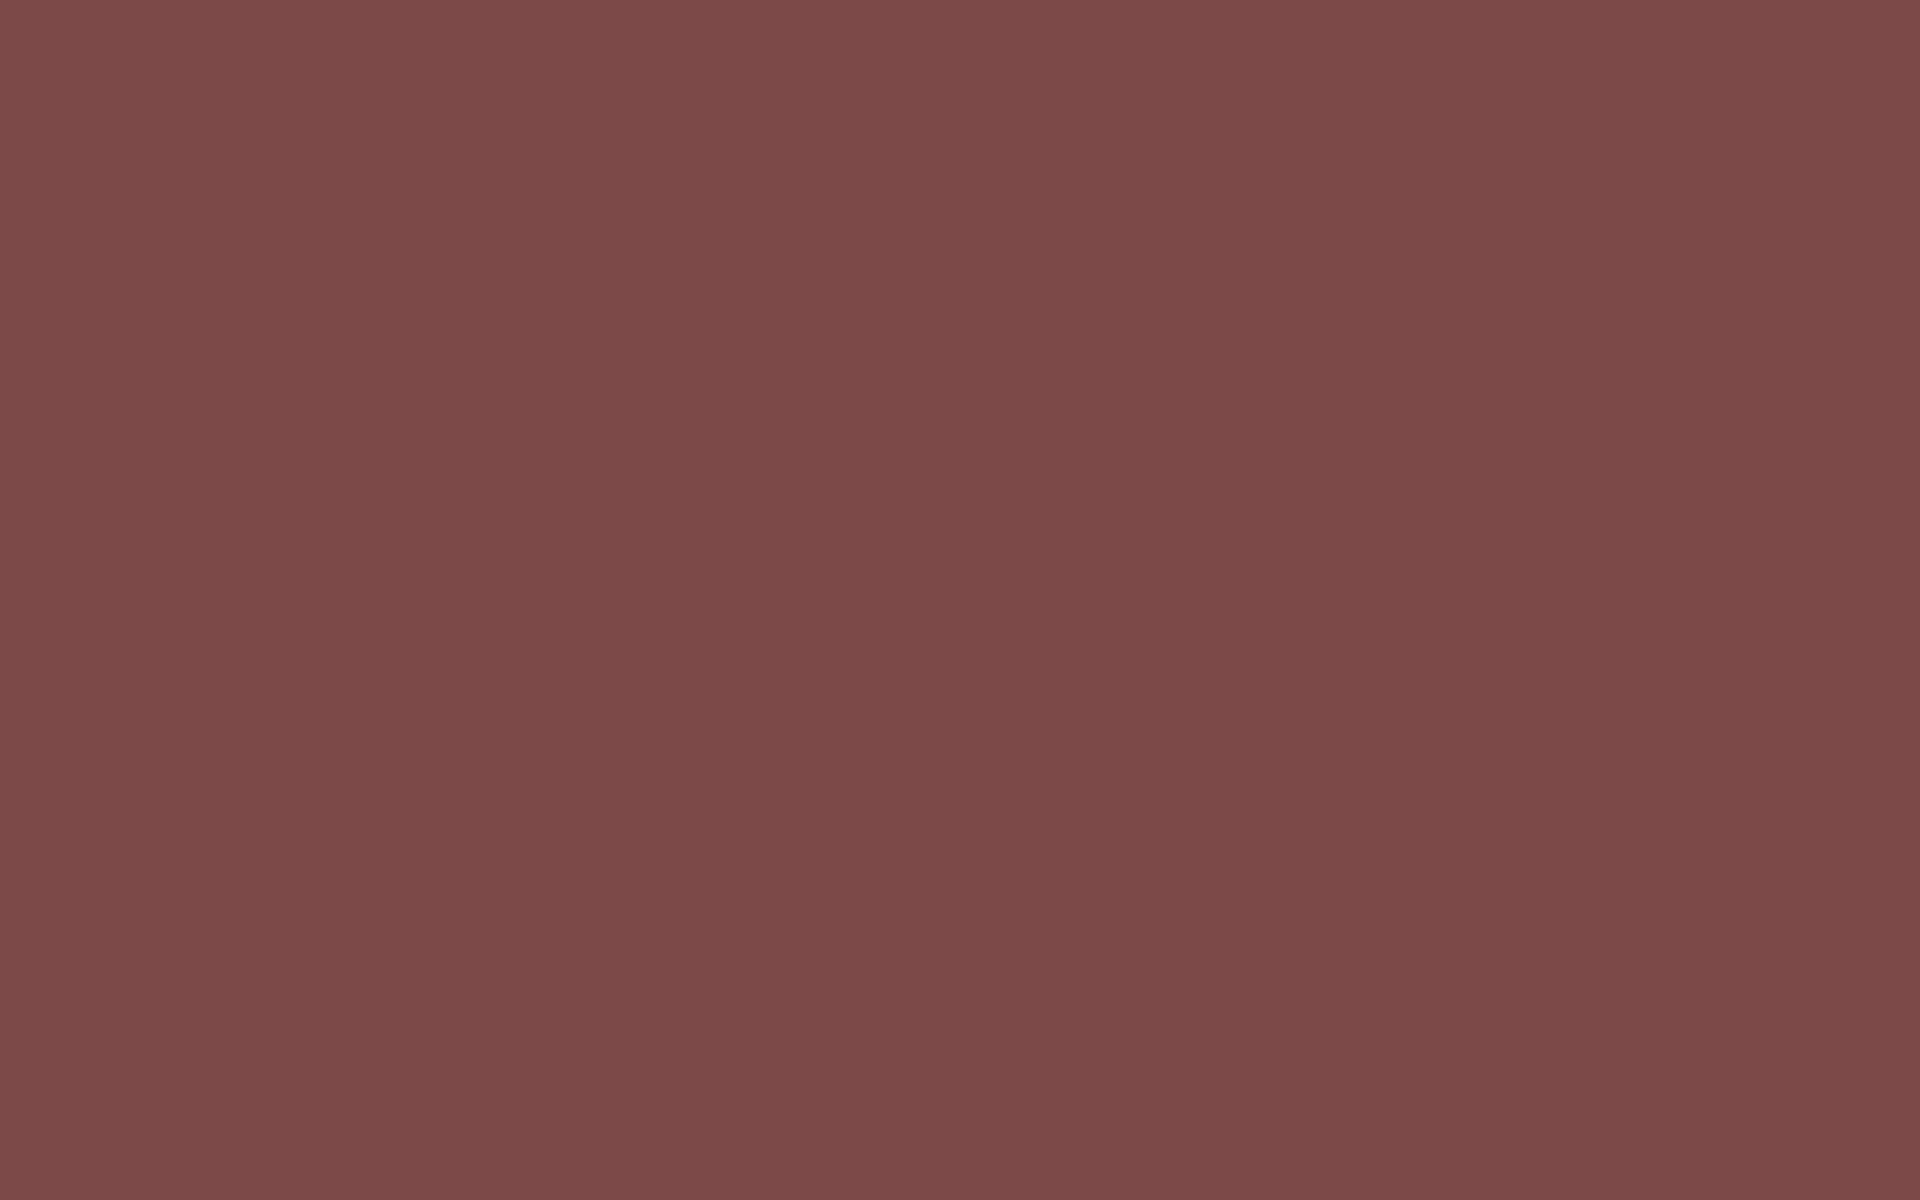 1920x1200 Tuscan Red Solid Color Background